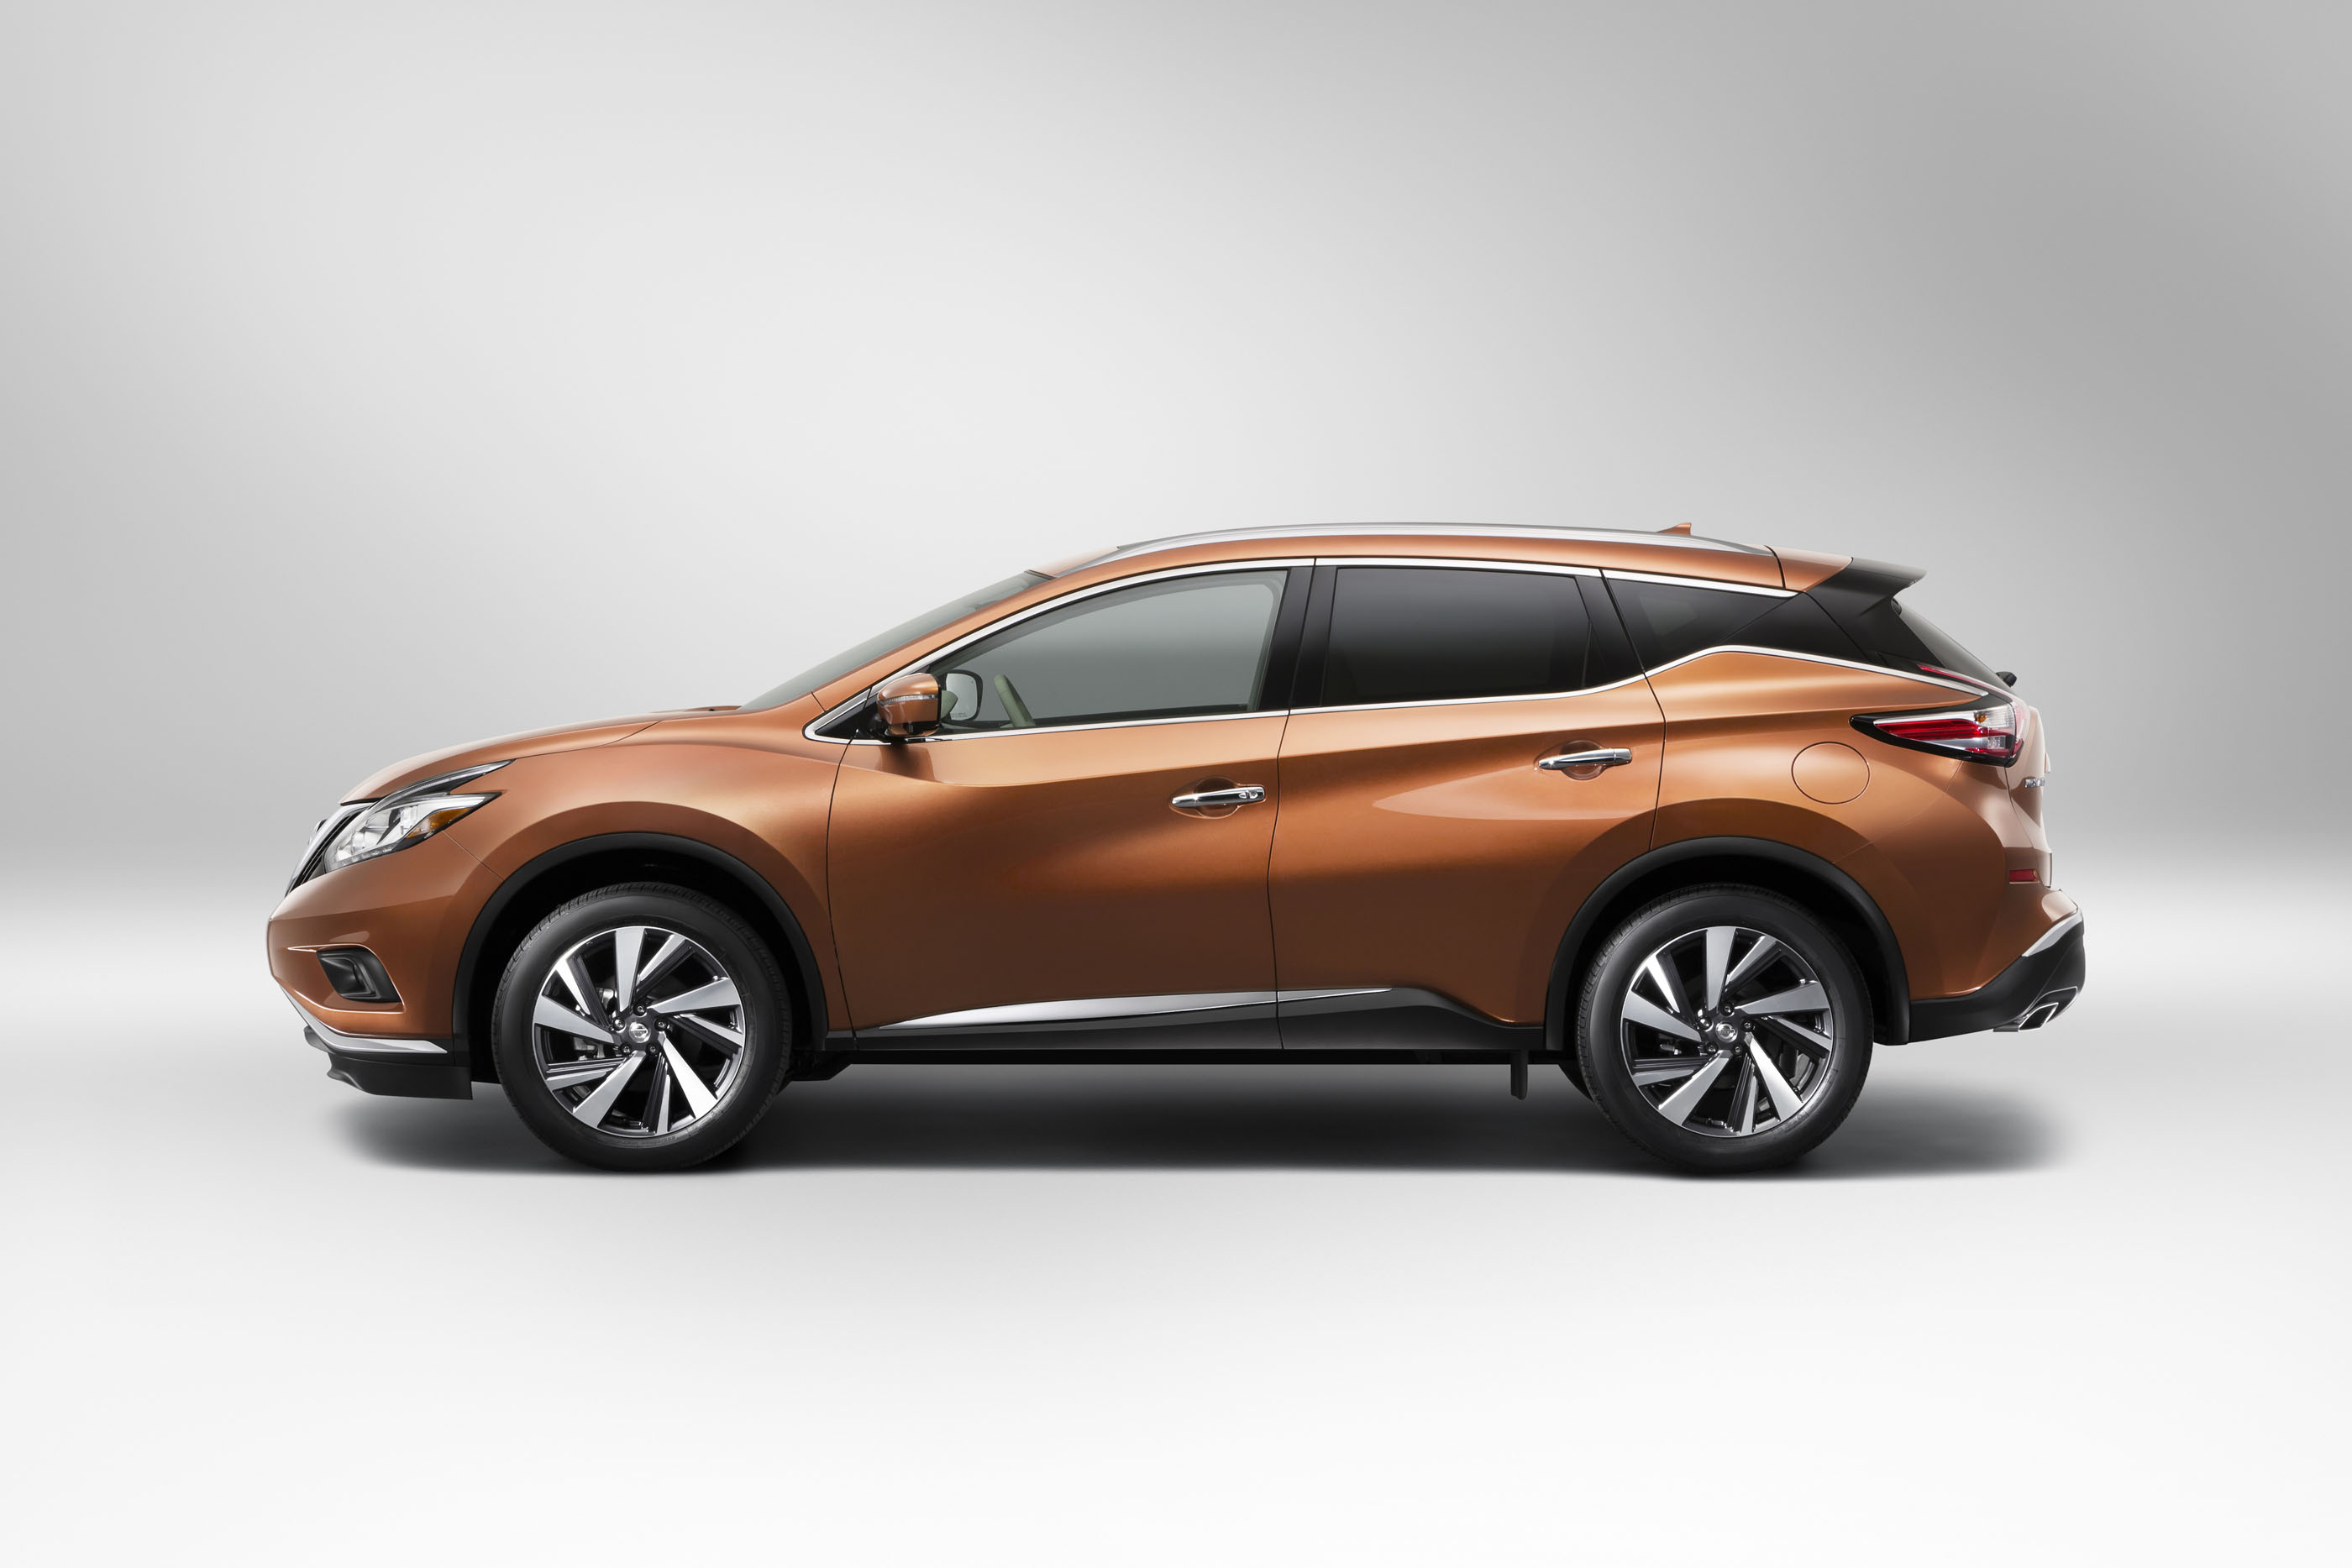 2017 nissan murano gets a mid year update adds apple carplay. Black Bedroom Furniture Sets. Home Design Ideas